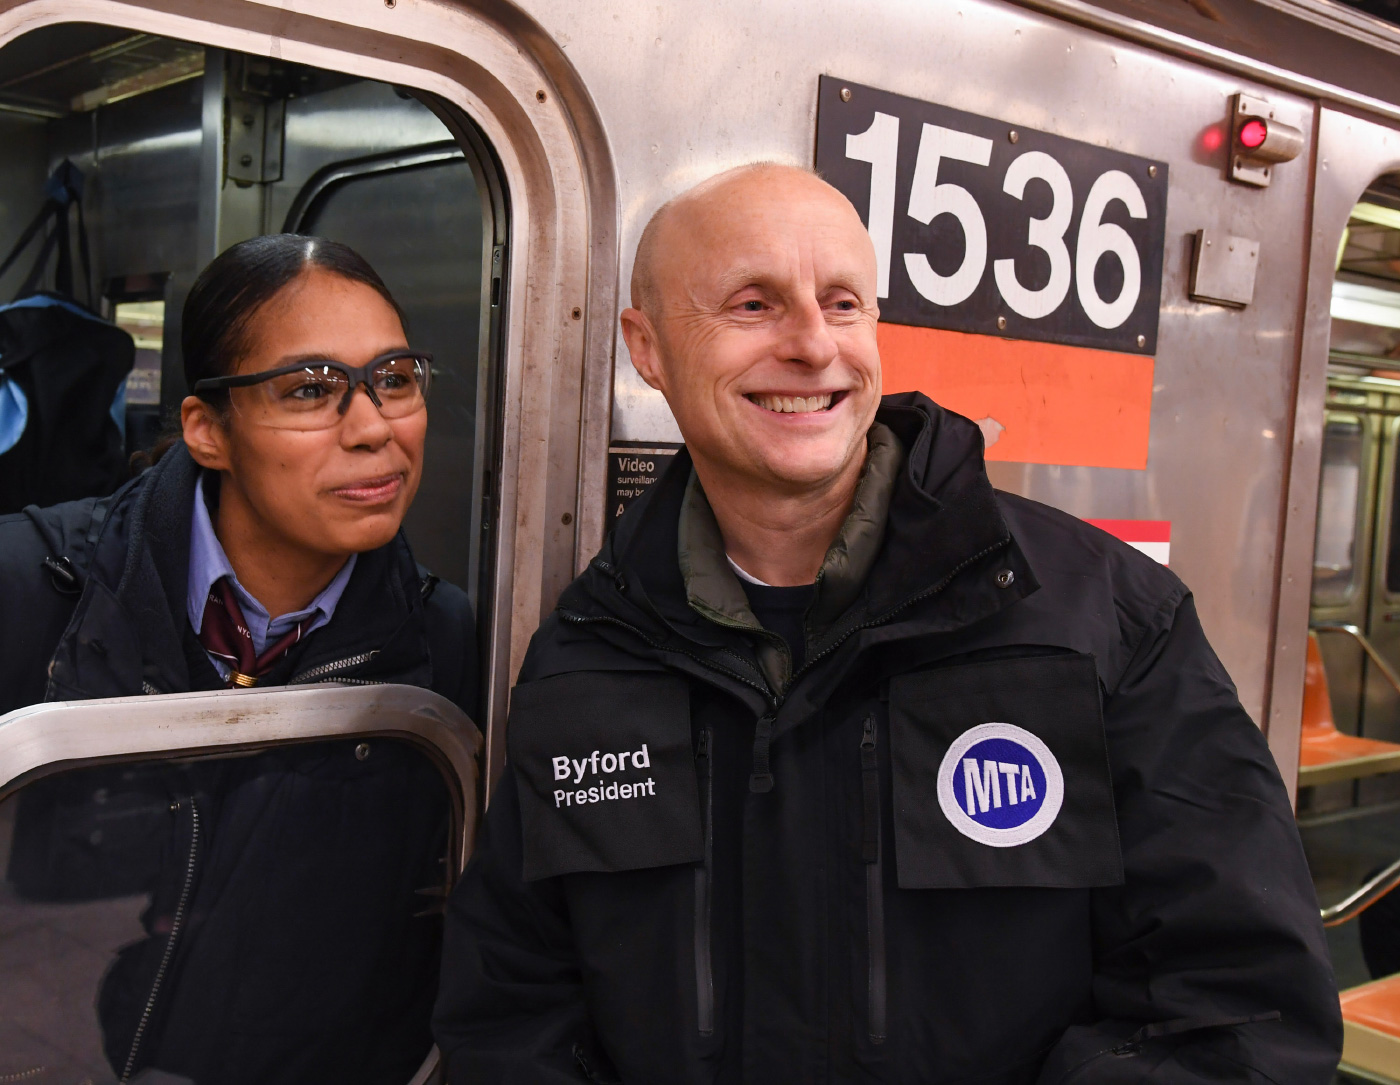 A smiling bald man, Andy Byford, in front of a train